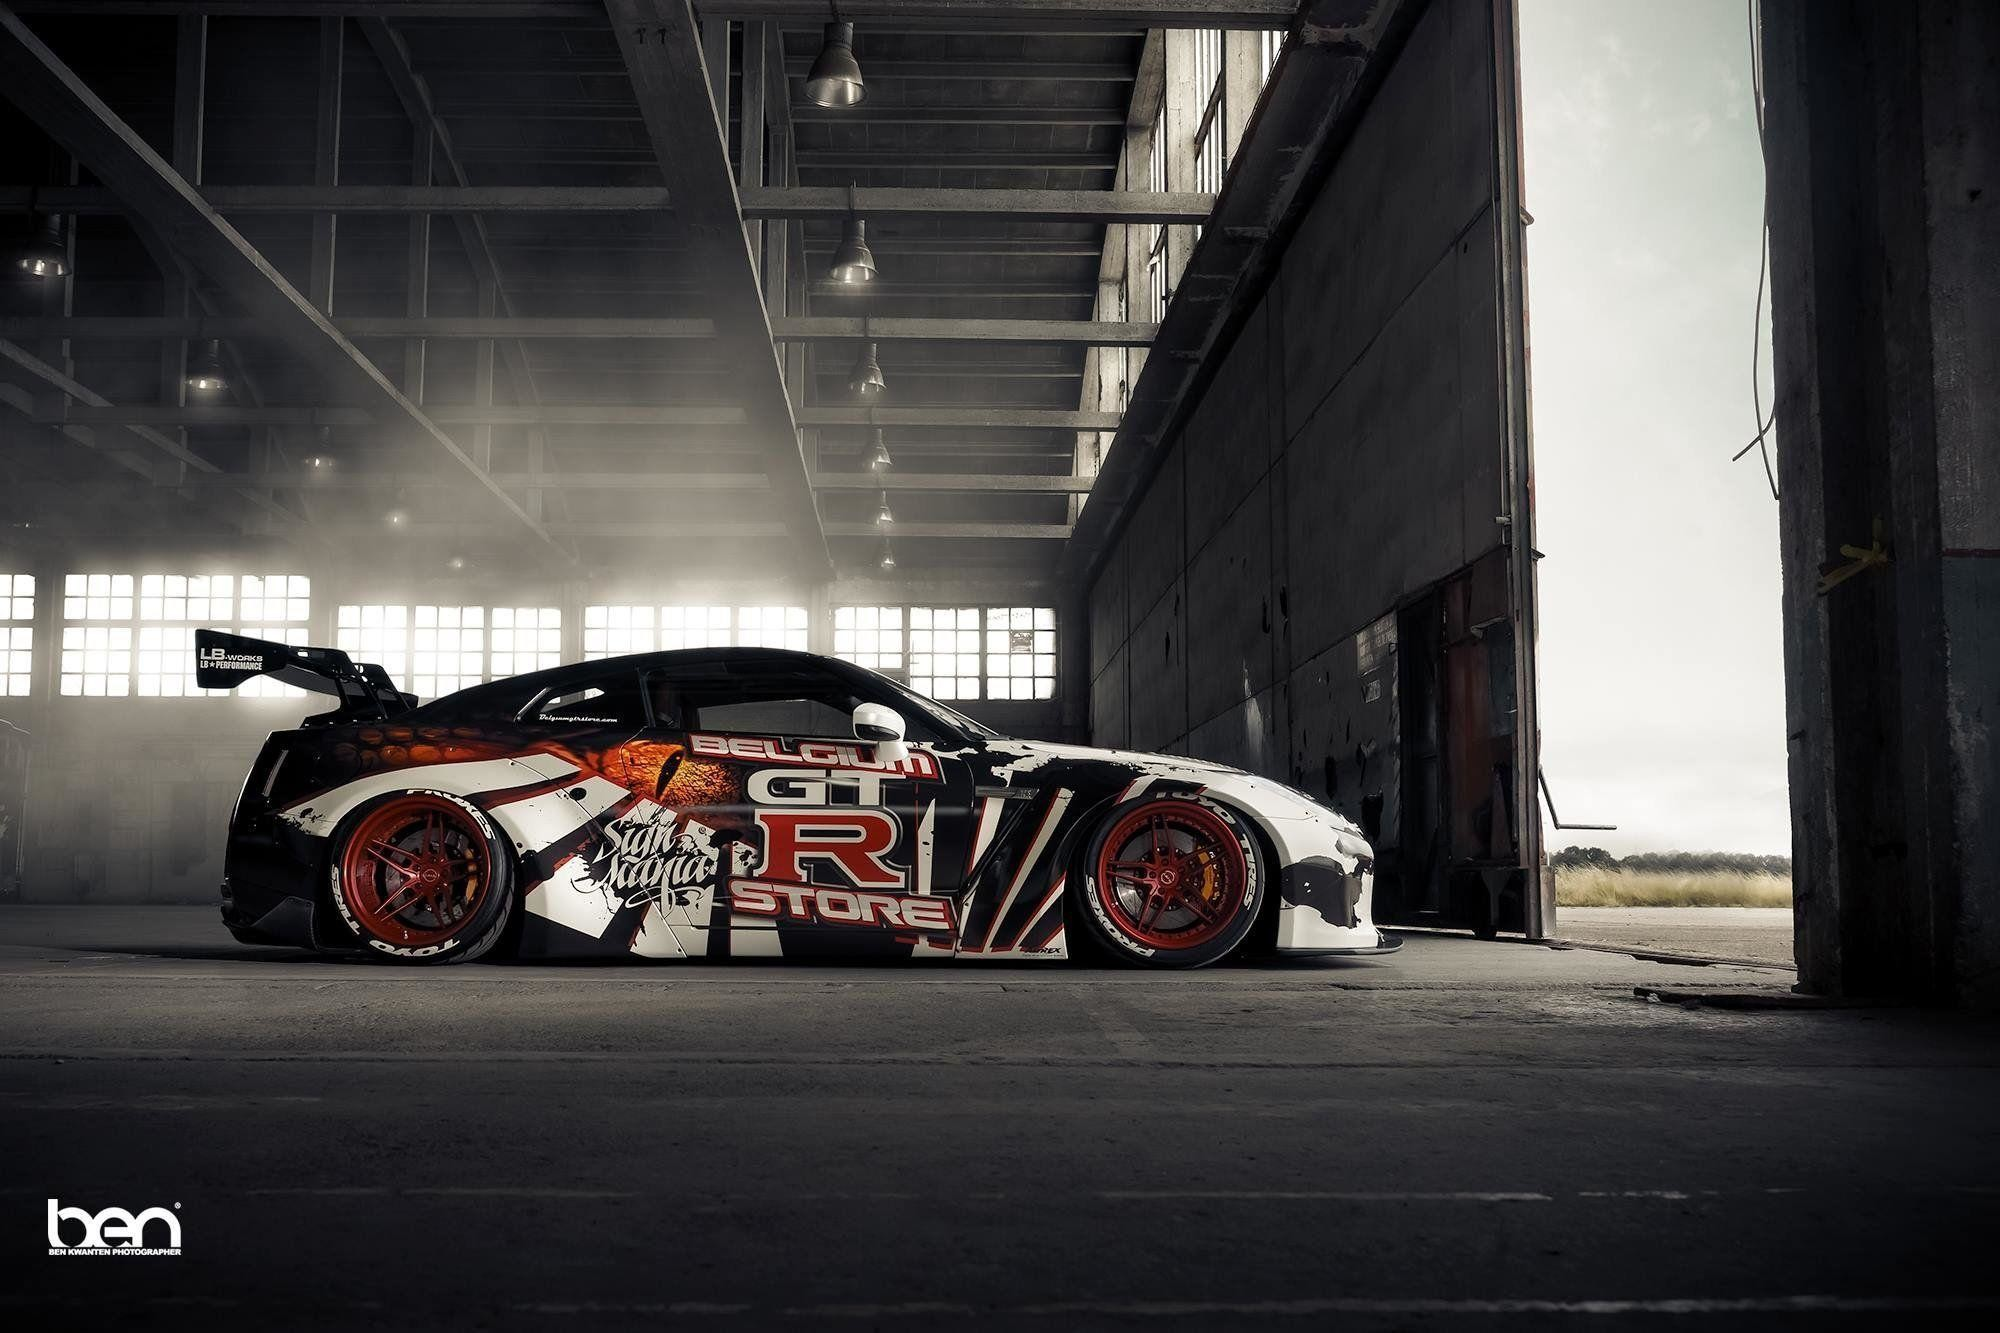 Liberty walk wallpapers 84 images - 4k car wallpaper for mobile ...